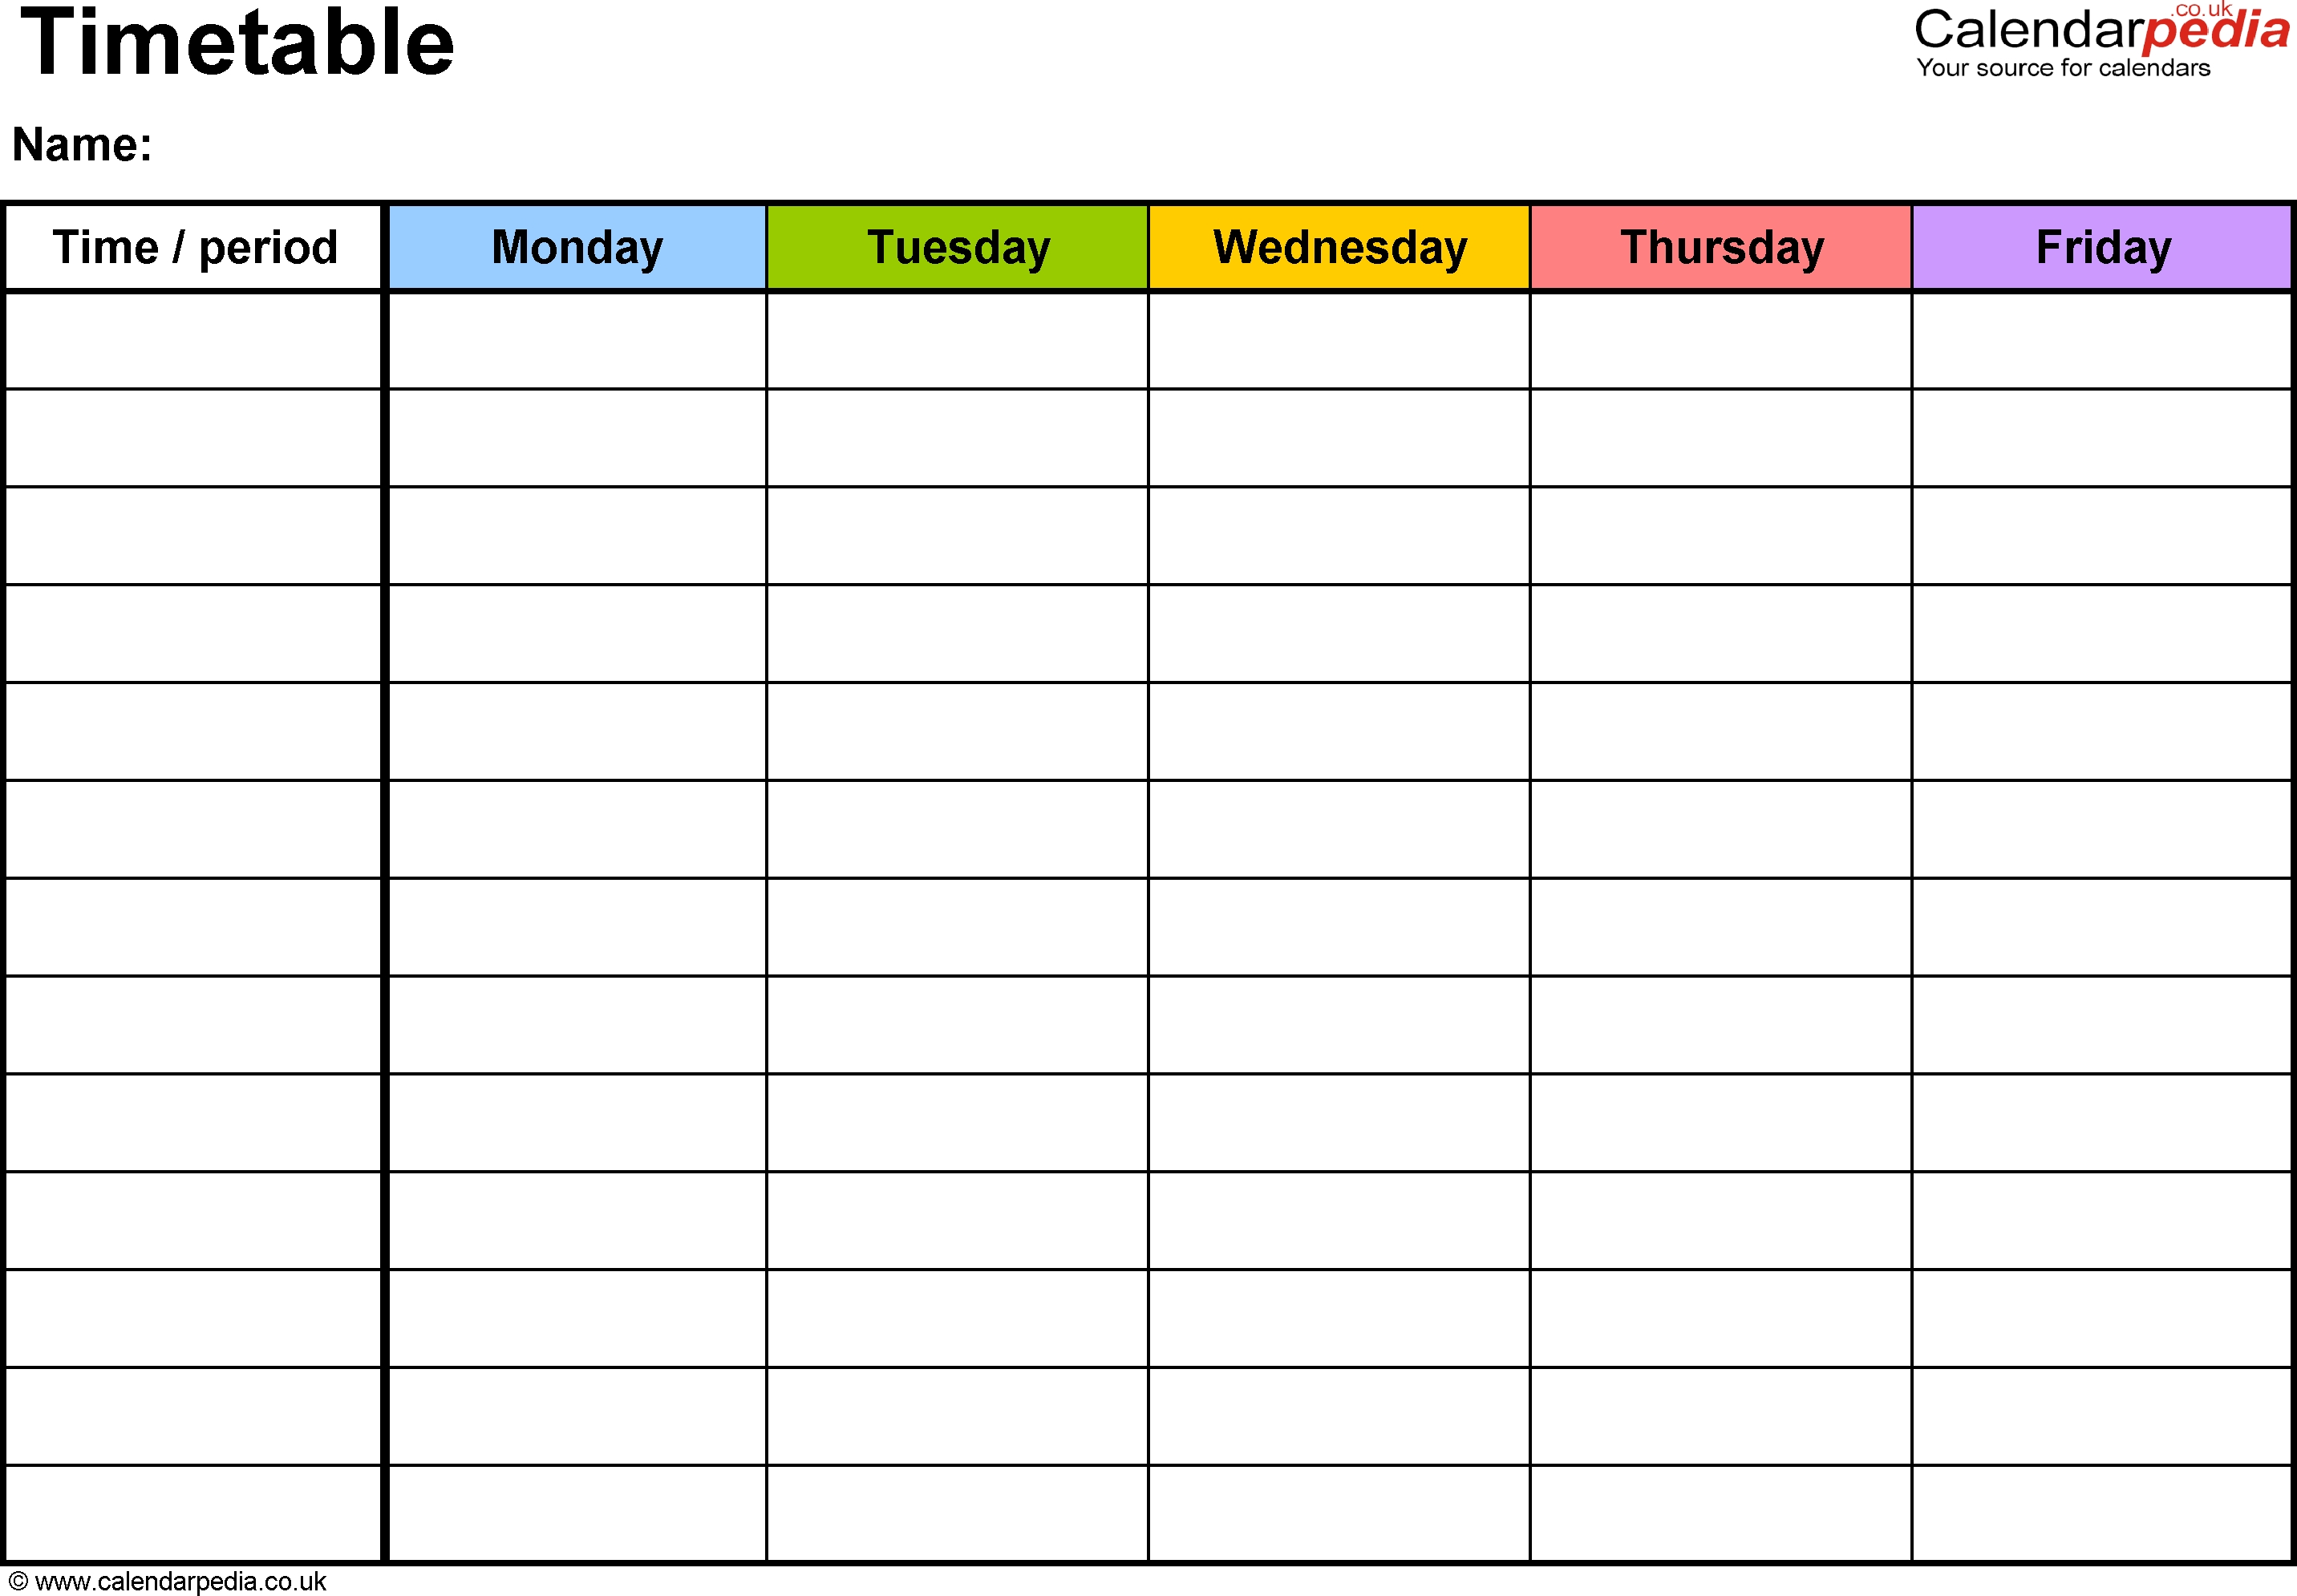 Pdf Timetable Template 2: Landscape Format, A4, 1 Page-One Week Monday Through Friday Calendar Template